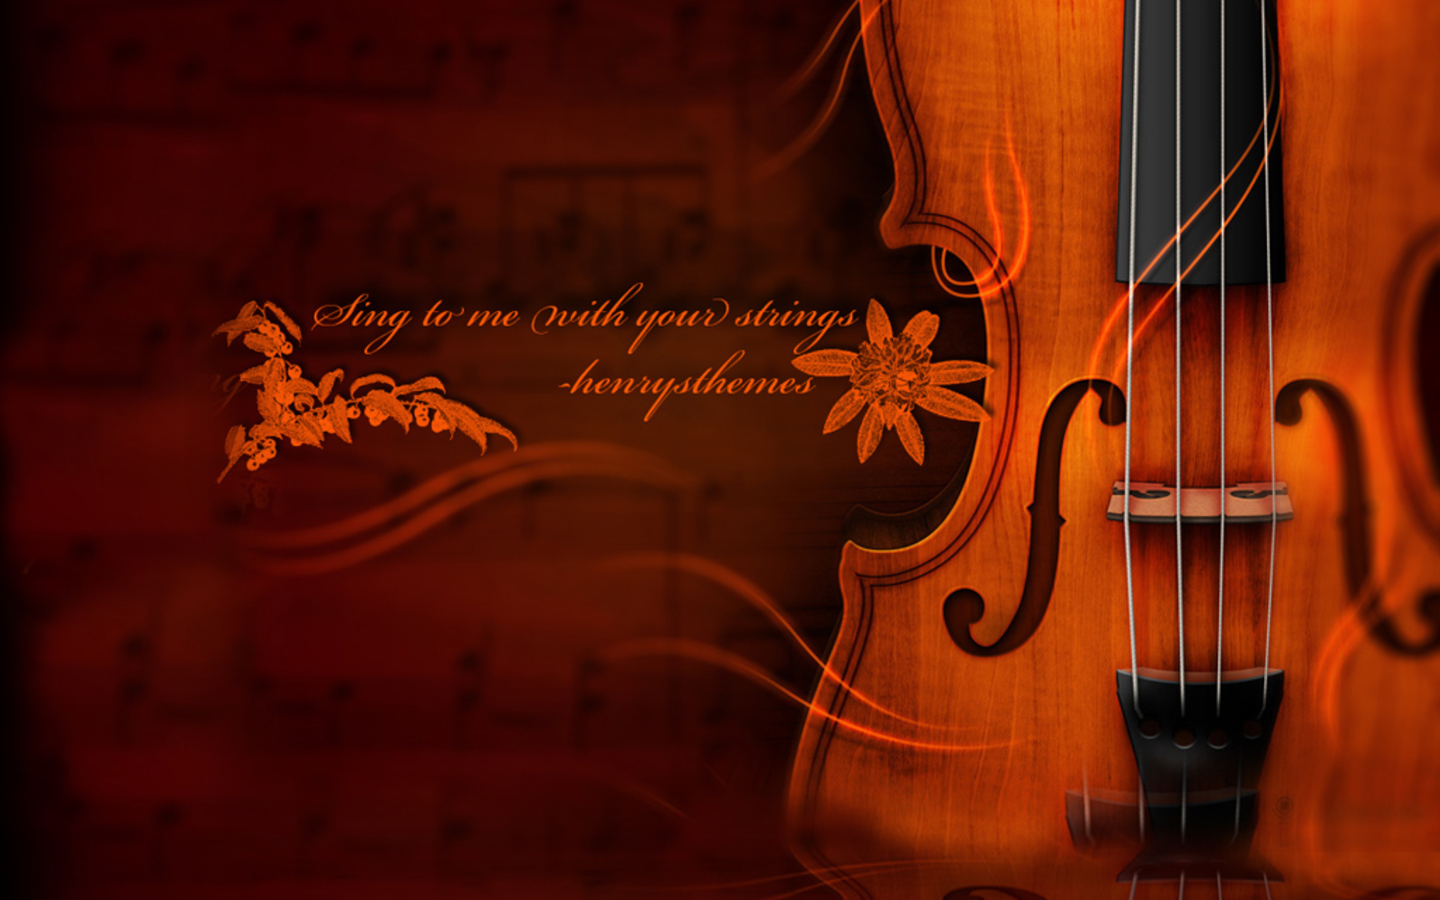 Violin And Cool Quote Wallpaper Desktop